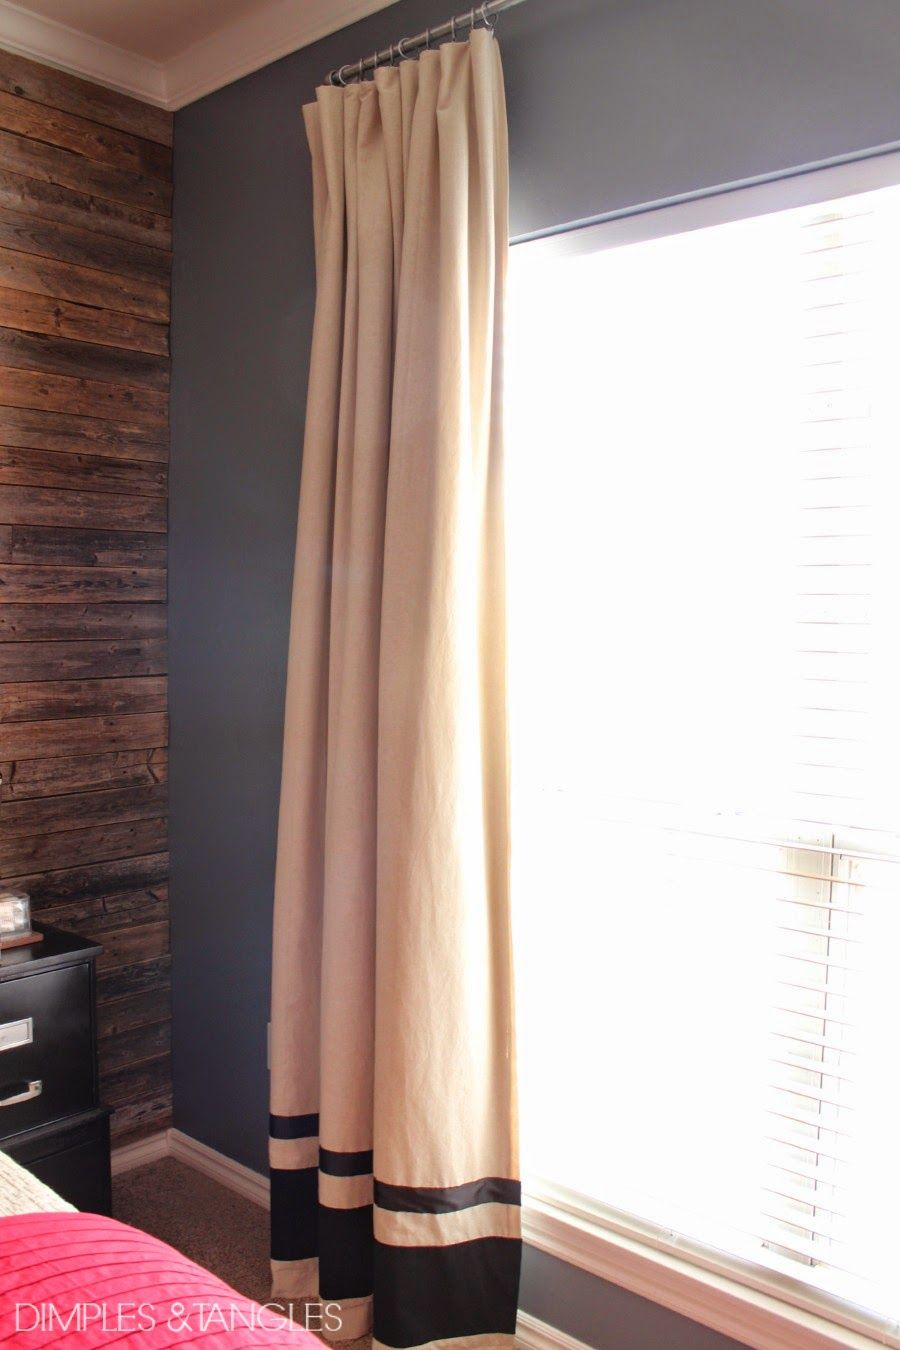 Dimples and Tangles: CUSTOMIZING IKEA CURTAINS AND A DIY ...